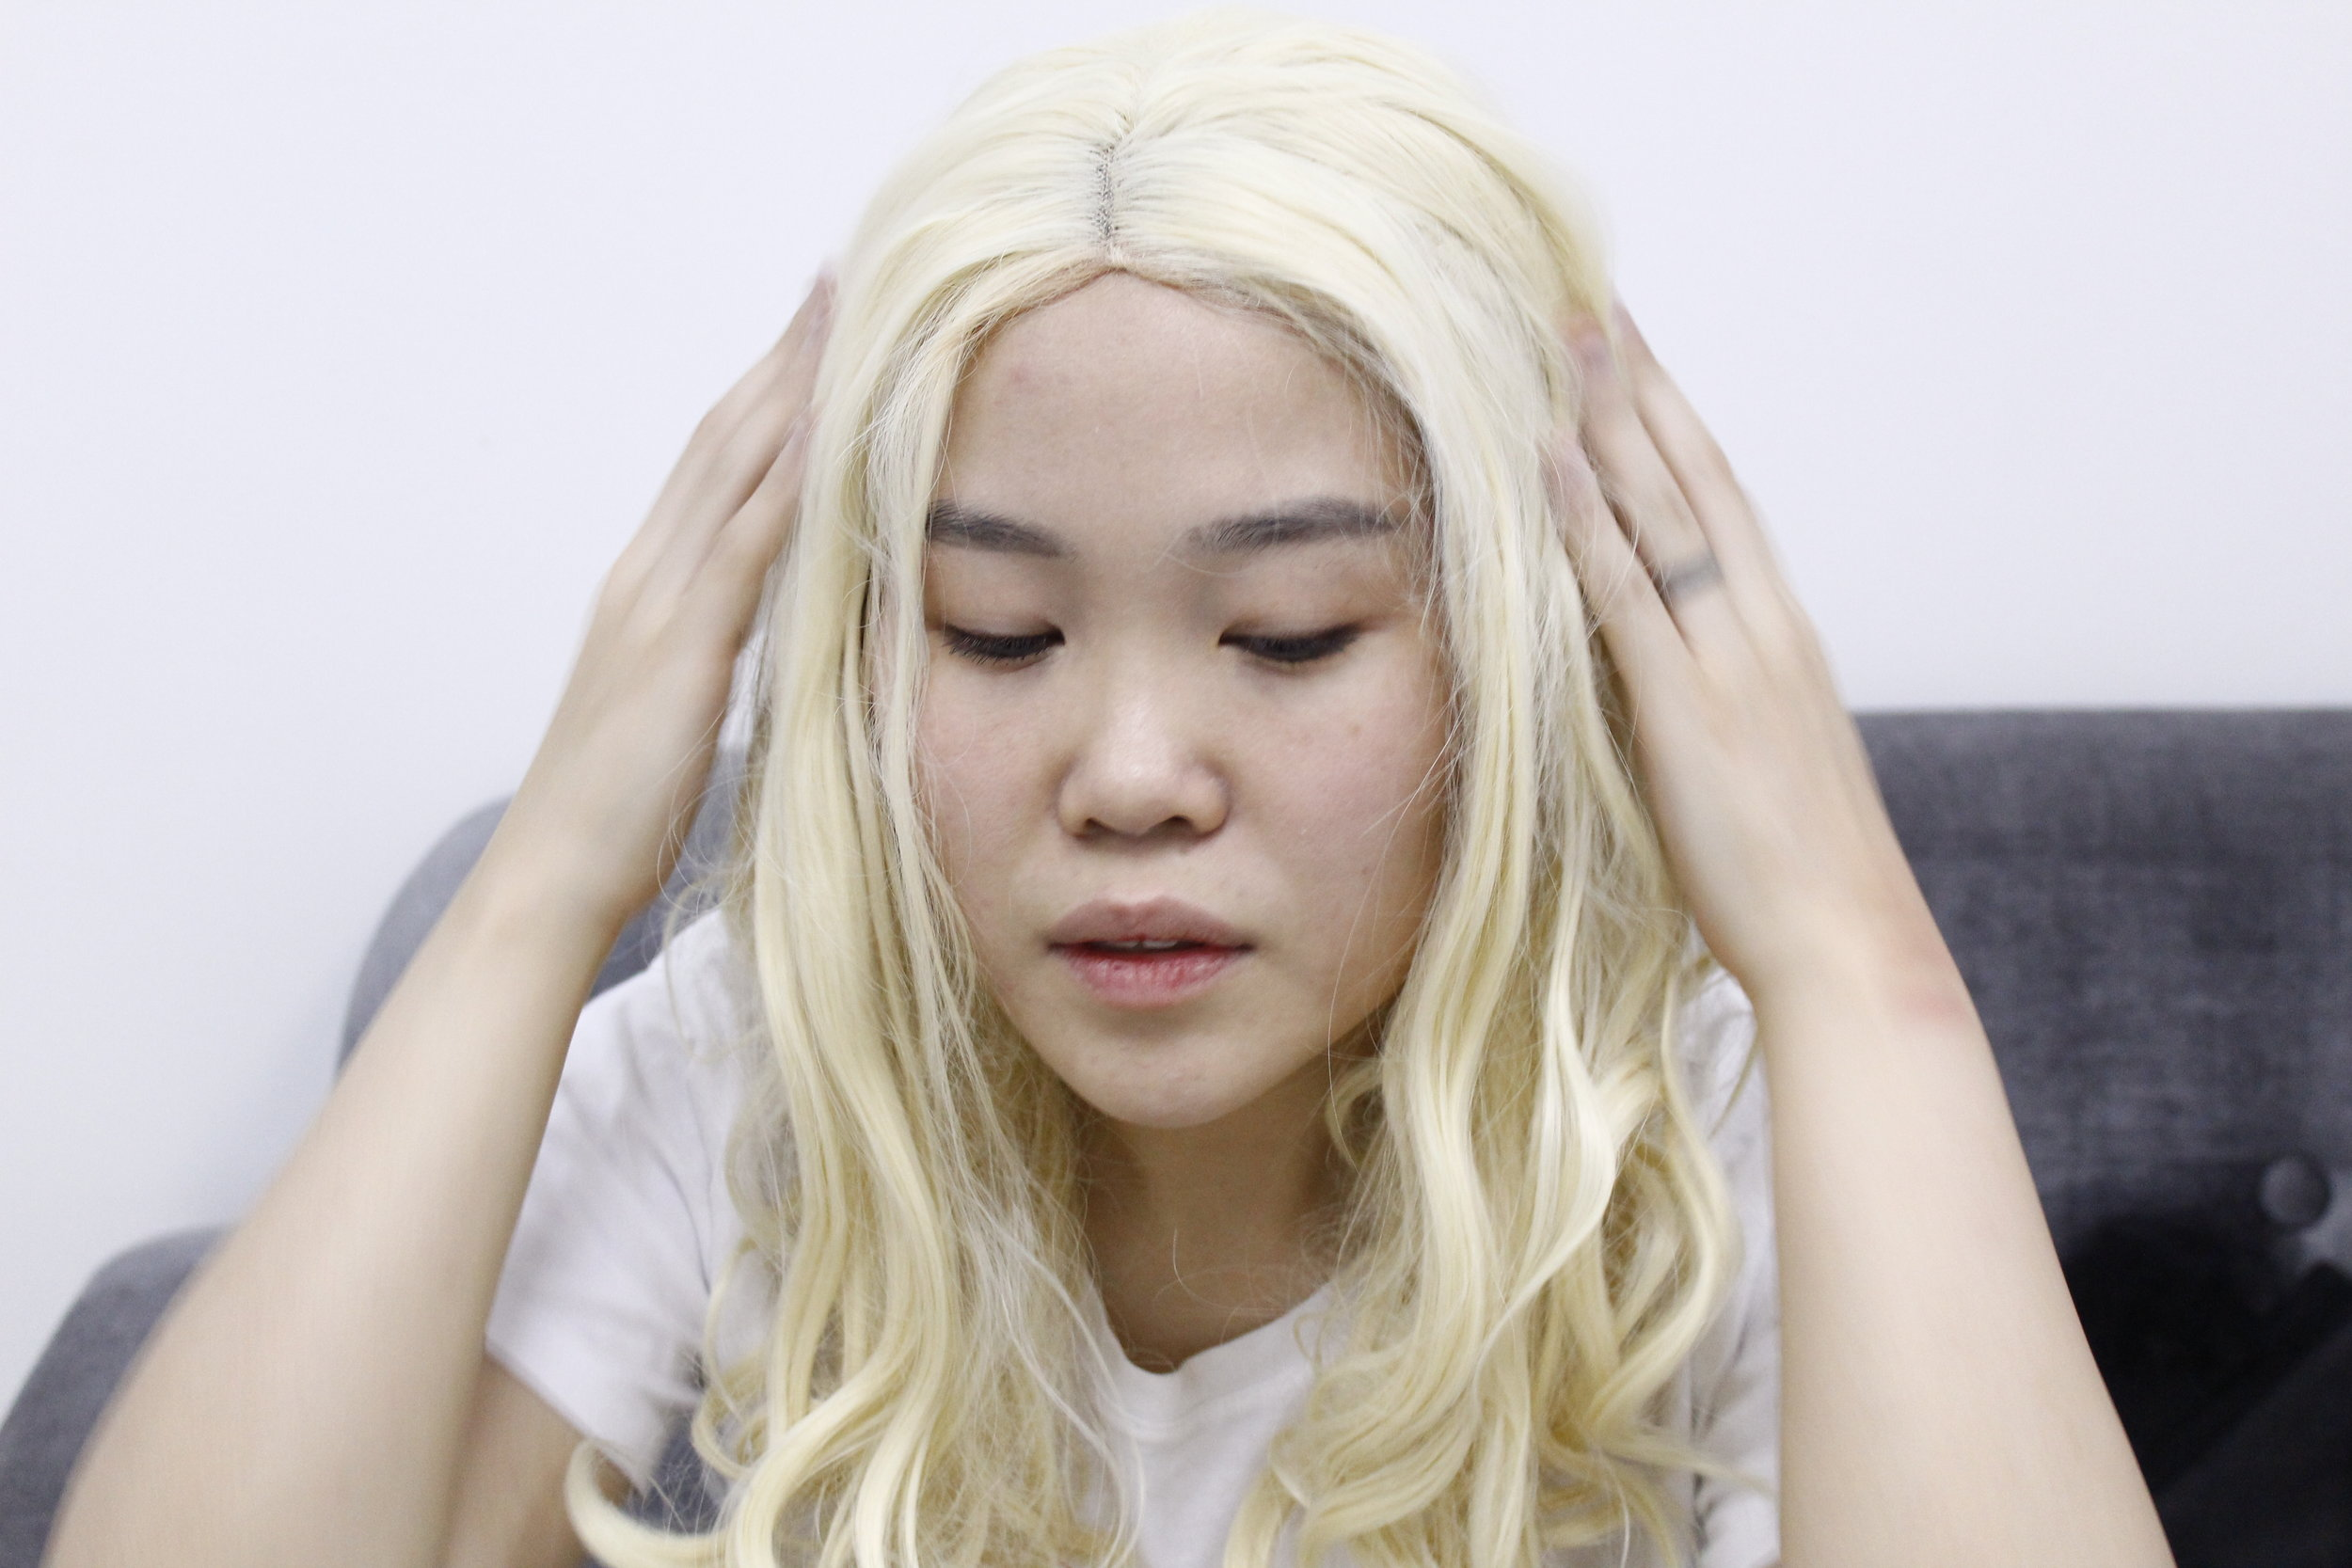 Blink and this lace-front wig will convince you that I am Khaleesi